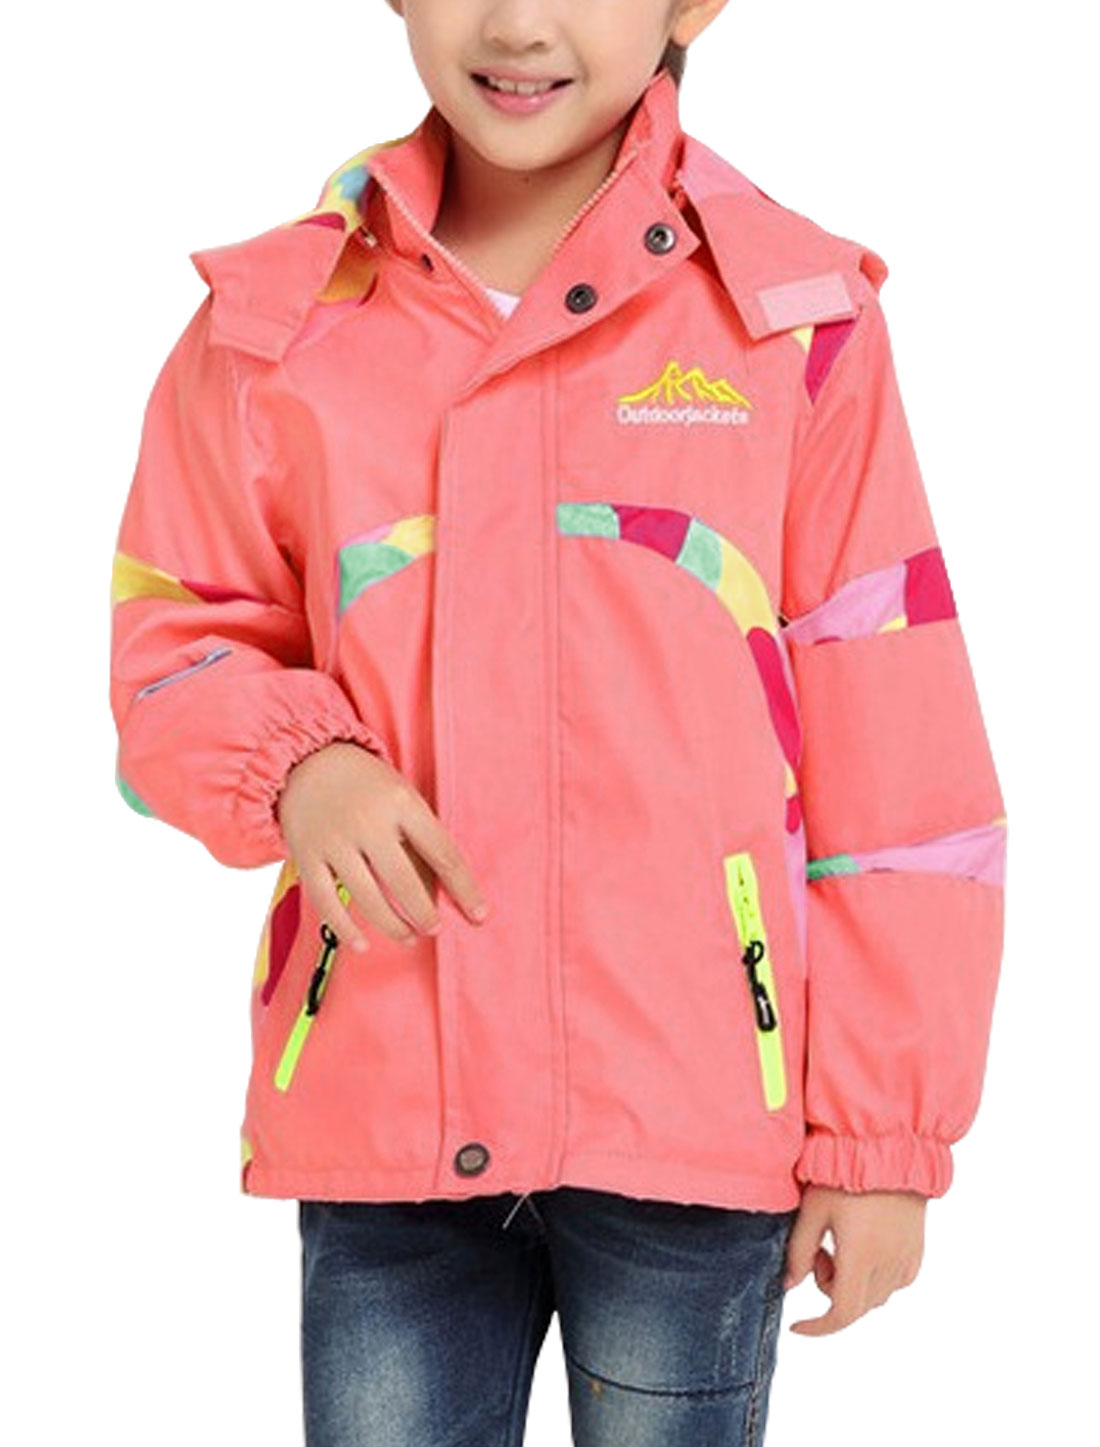 Girls Detachable Hood Zip Closure Contrast Color Jacket Pink 14